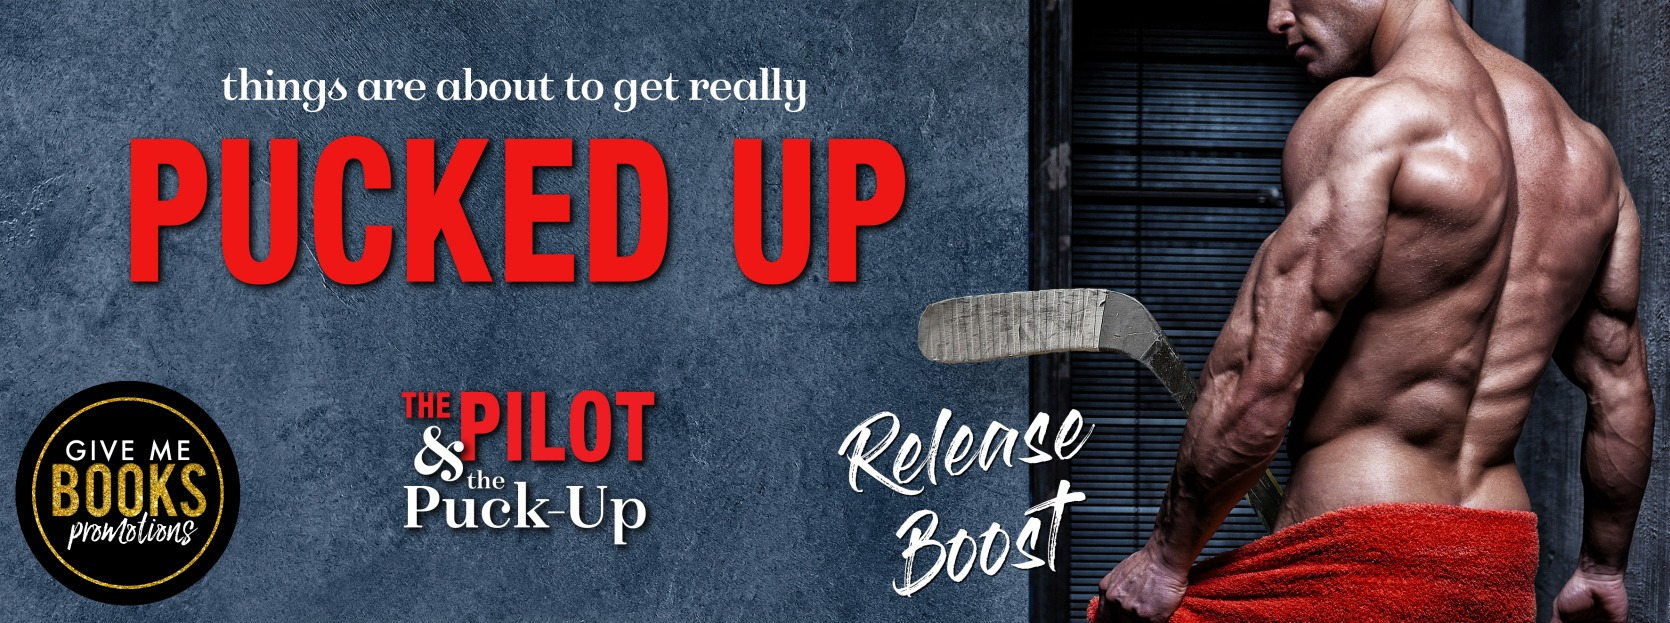 Release Boost: The Pilot and the Puck Up by Pippa Grant